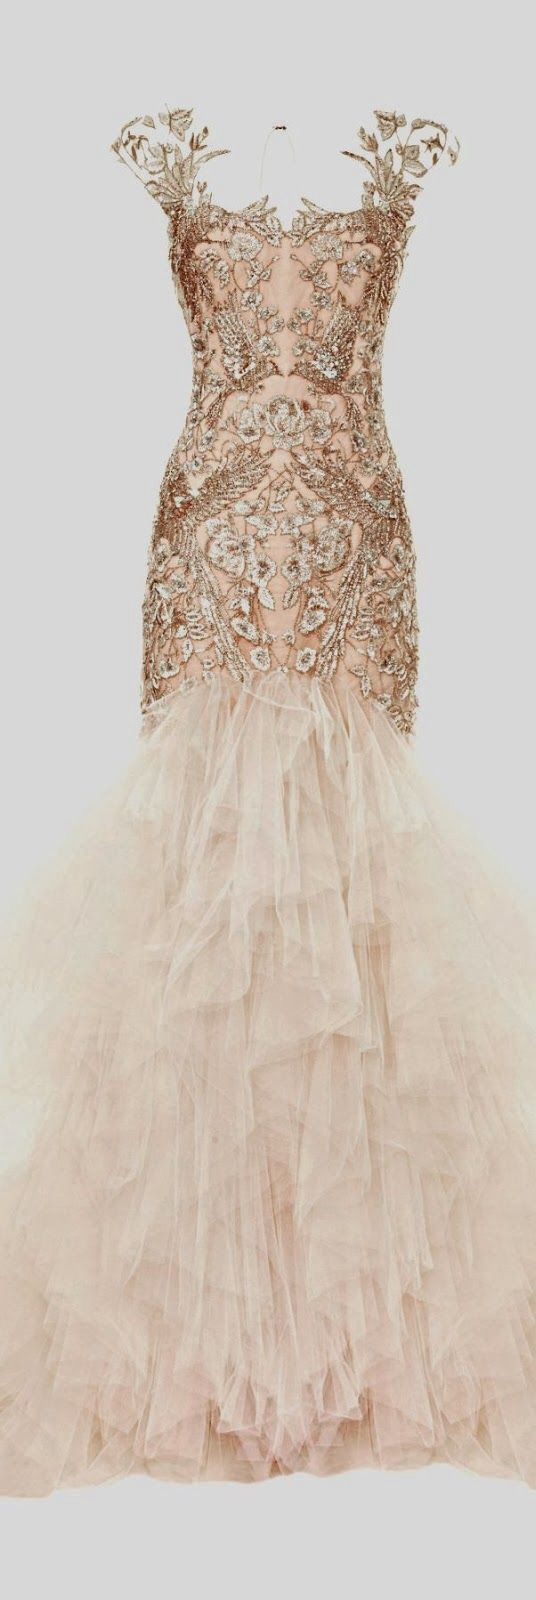 Alexander mcqueen 2016 wedding dresses pinterest for Pink and gold wedding dress